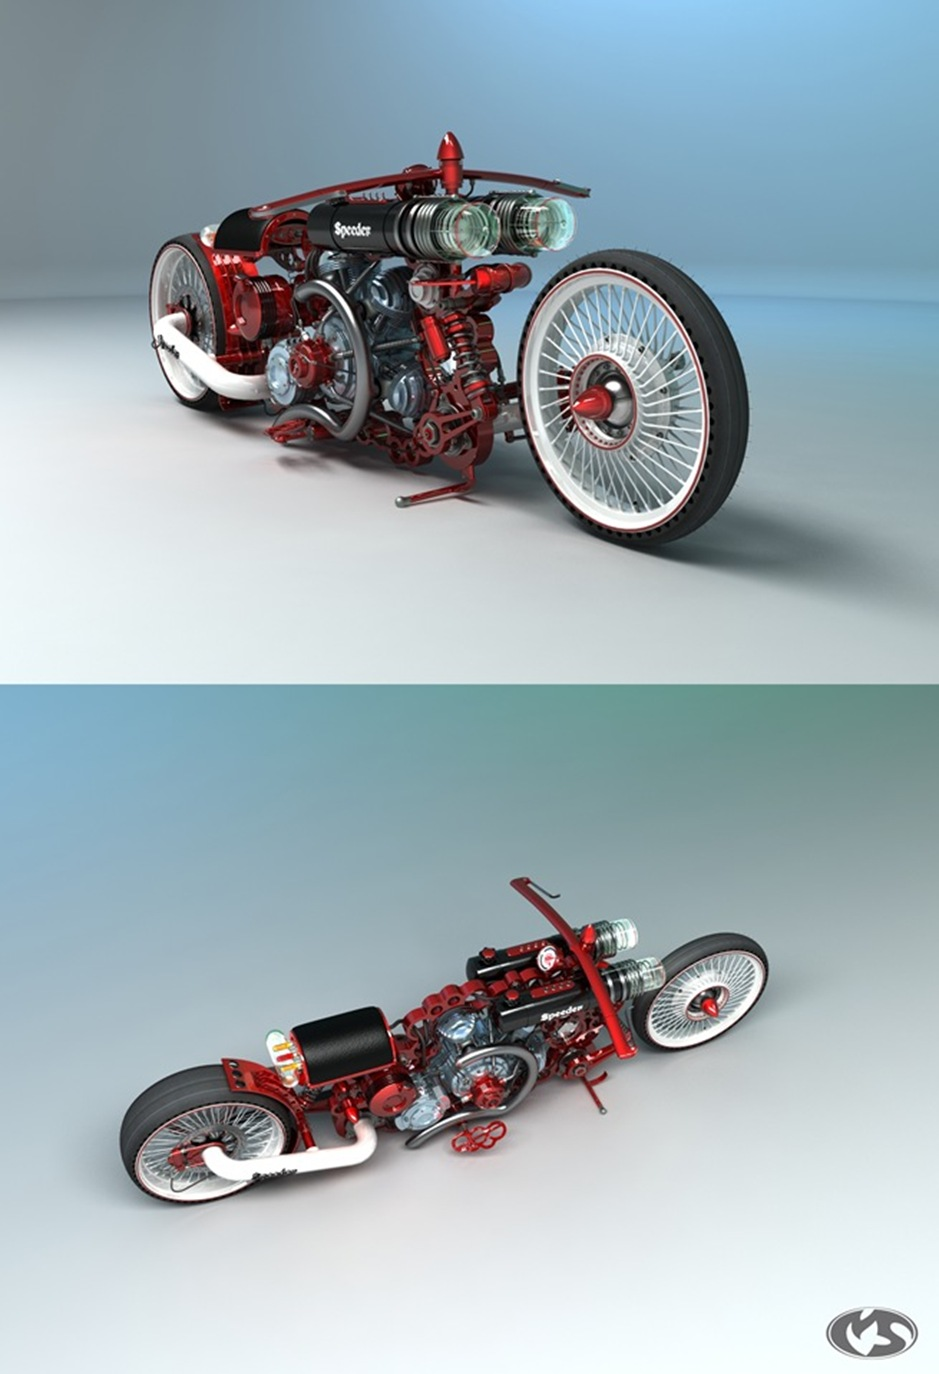 3 10732 thumb1 9 Seriously Sick Sleds by Solif: Creative Custom Choppers